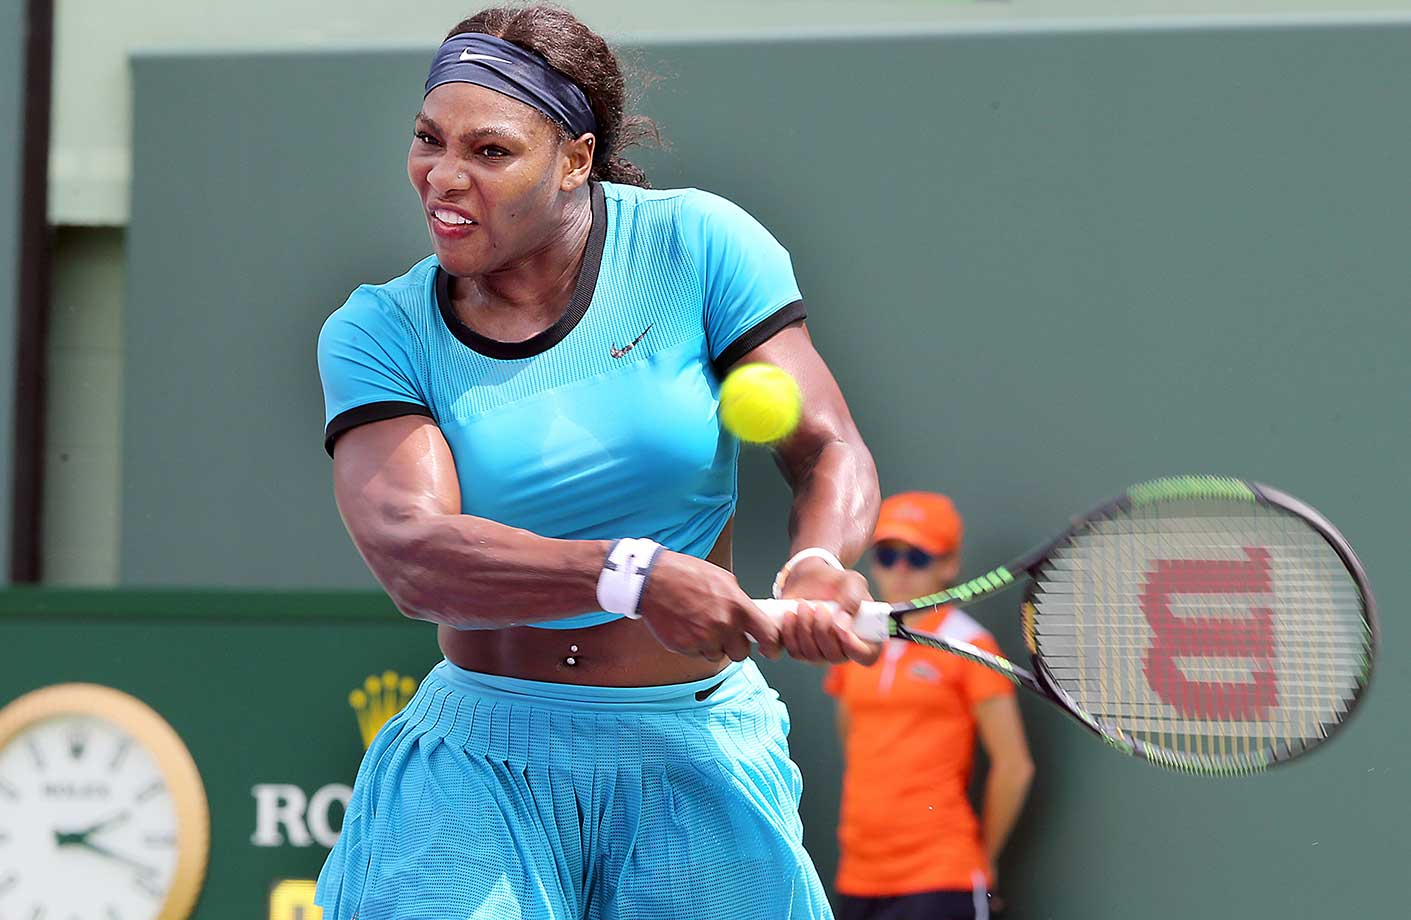 Serena Williams returns a shot during her loss to Svetlana Kuznetsova in the fourth round of the Miami Open.